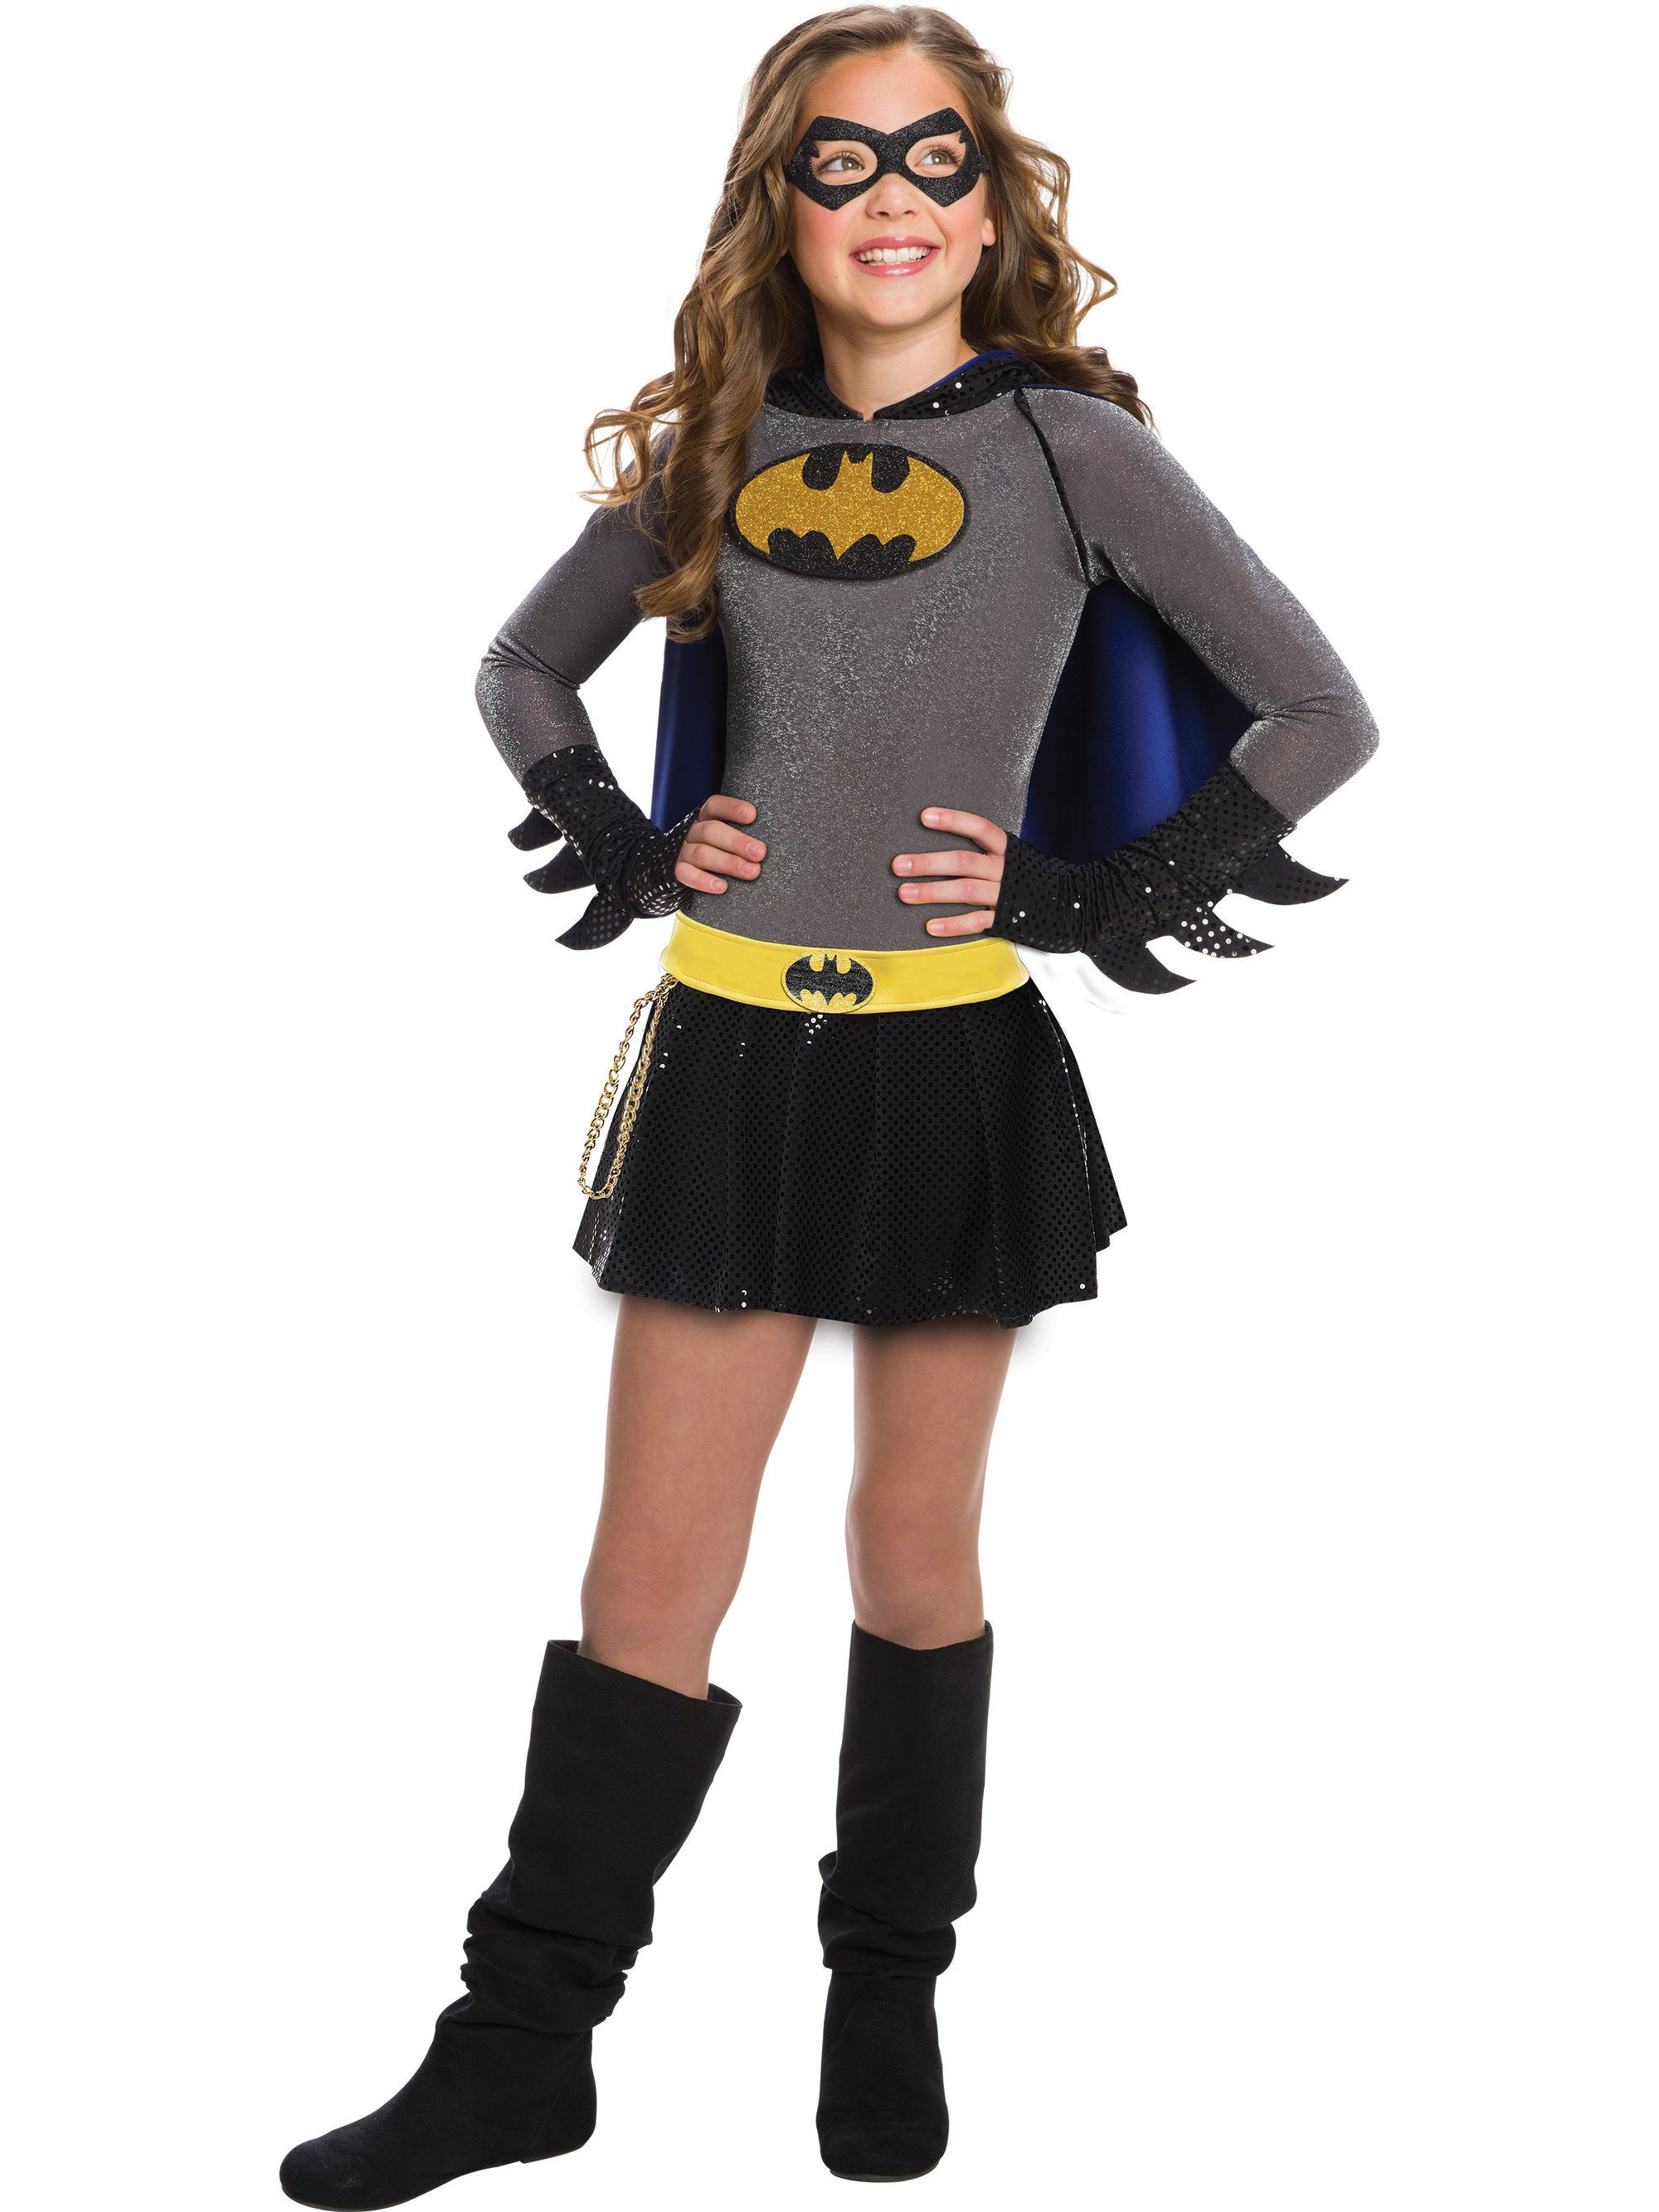 Batgirl Costume For Children  sc 1 st  Wholesale Halloween Costumes & Batgirl Costume For Children - Girls Costumes for 2018 | Wholesale ...